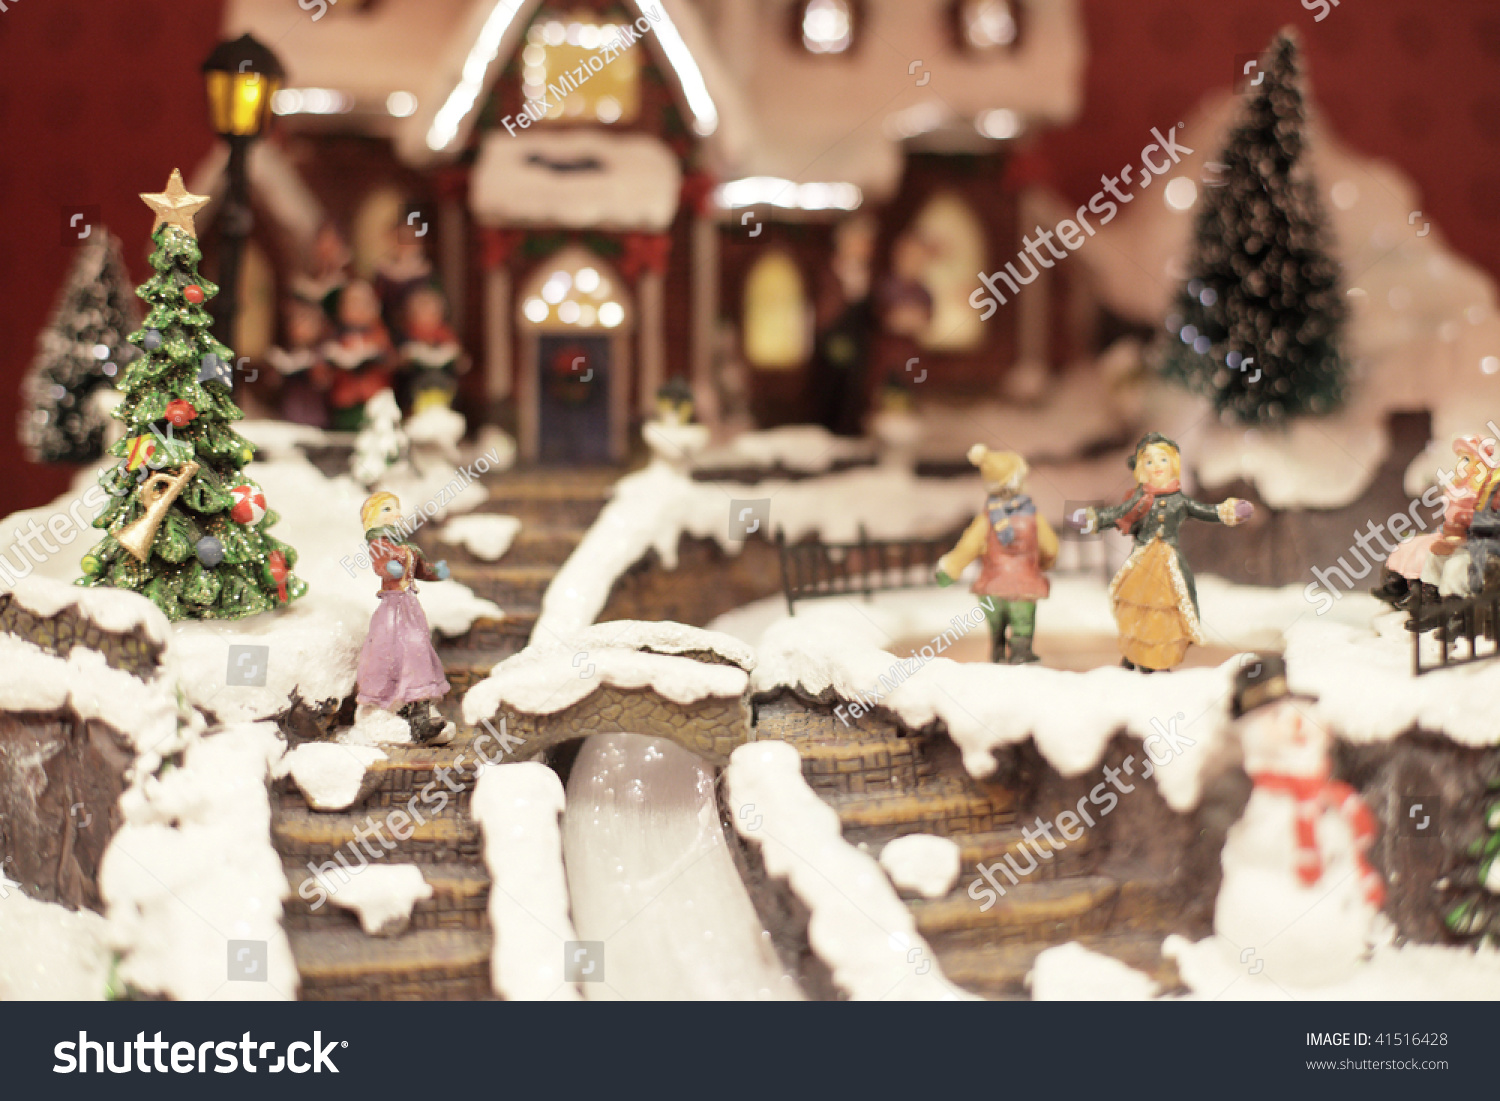 Miniature Christmas Village Stock Photo Edit Now 41516428